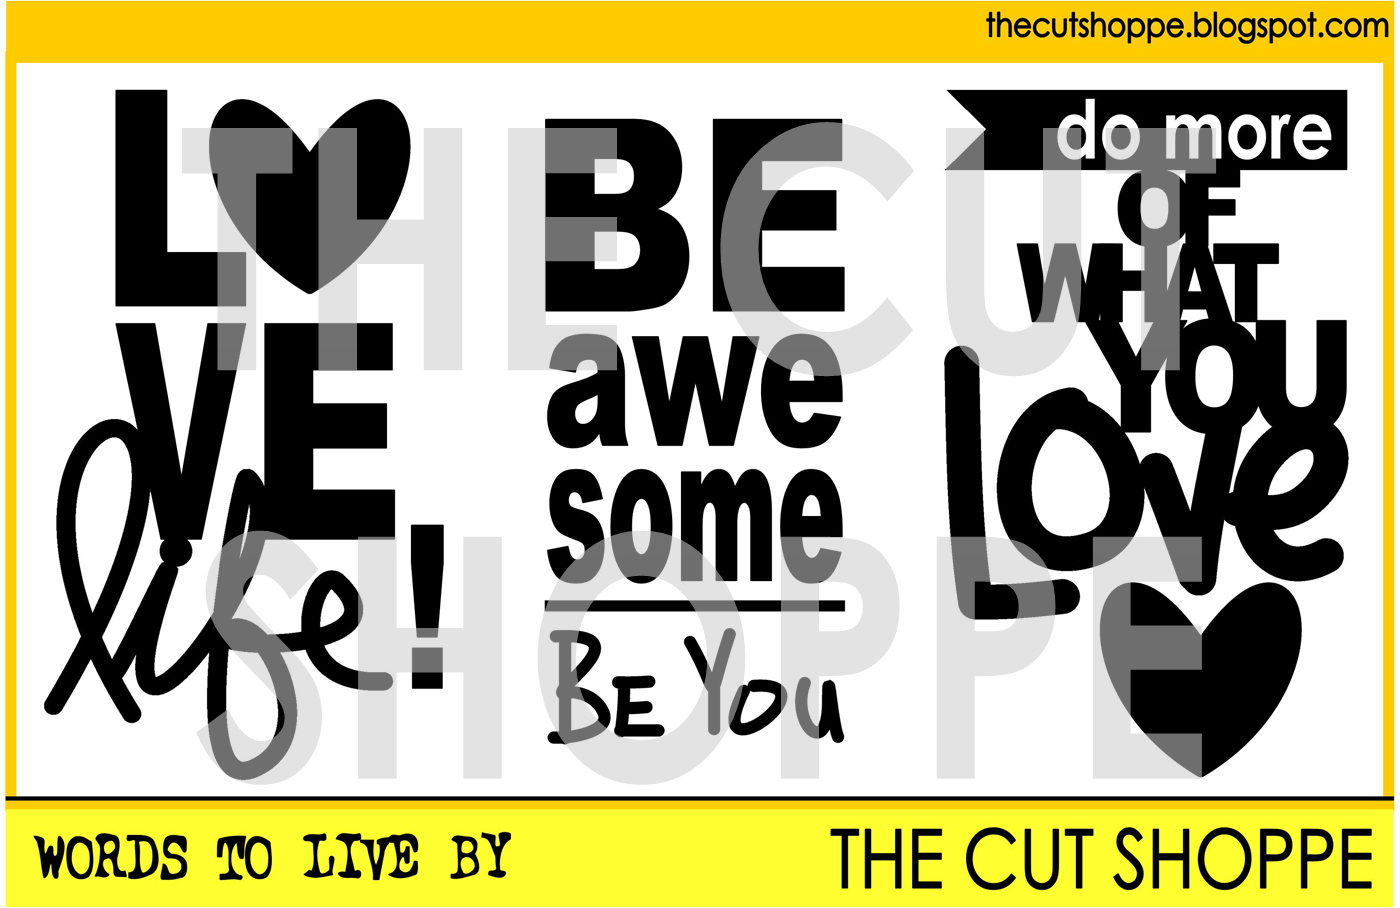 https://www.etsy.com/listing/205579485/the-words-to-live-by-cut-file-includes-3?ref=shop_home_active_1